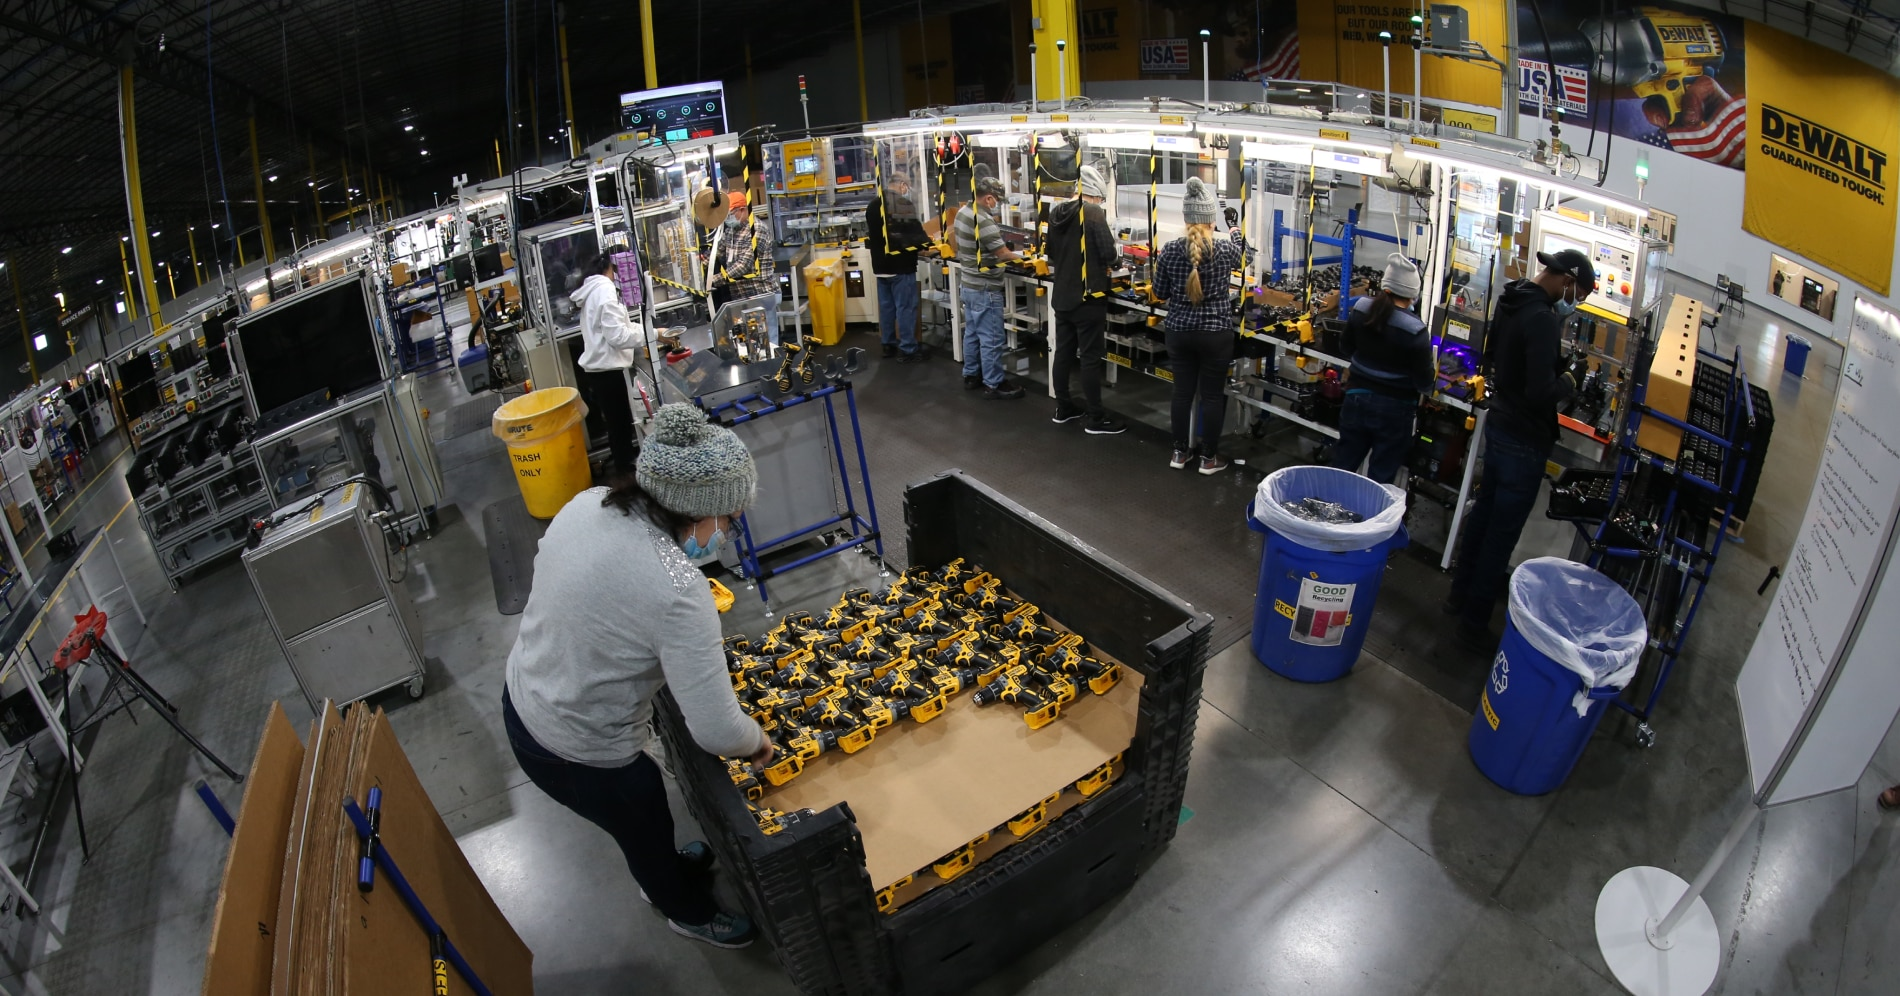 employees assembling dewalt products at the stanley black & decker manufacturing facility in charlotte, nc while wearing ppe